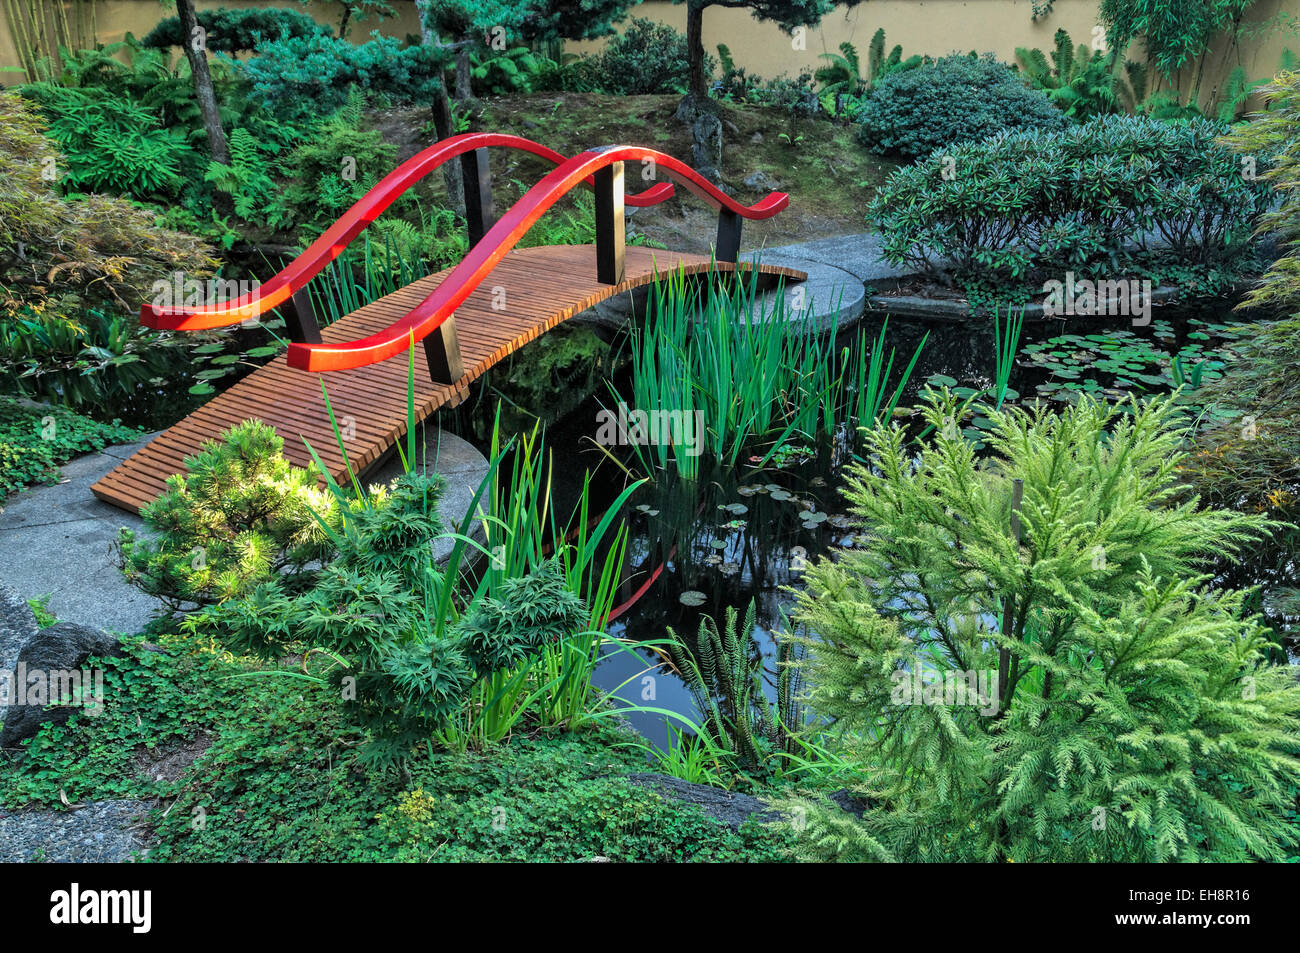 Japanese bridge, Park and Tilford Gardens, N. Vancouver, British Columbia, Canada - Stock Image